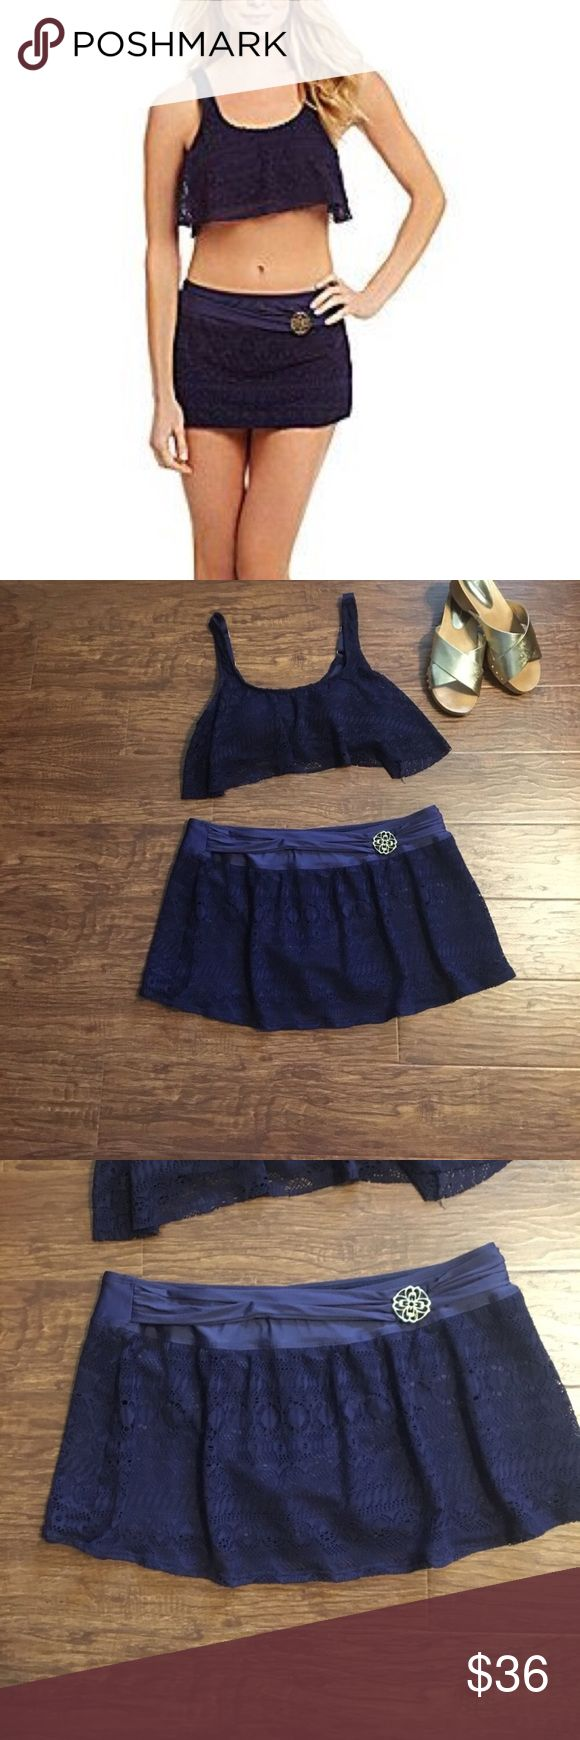 """Antonio Melani 2 piece navy bathing suit Gorgeous two-piece navy blue bathing suit by Antonio Melani. Size large. Like new. Excellent preowned condition no flaws stains or rips's. Top has an adjustable strap and padded bra in the bottoms are in excellent condition as well with a skirt style design.            MEASUREMENTS LAYING FLAT:               SKIRT: waist: 17"""" length: 11.5"""" TOP: armpit to armpit is 15.5""""across the bottom Band measures 14""""…"""